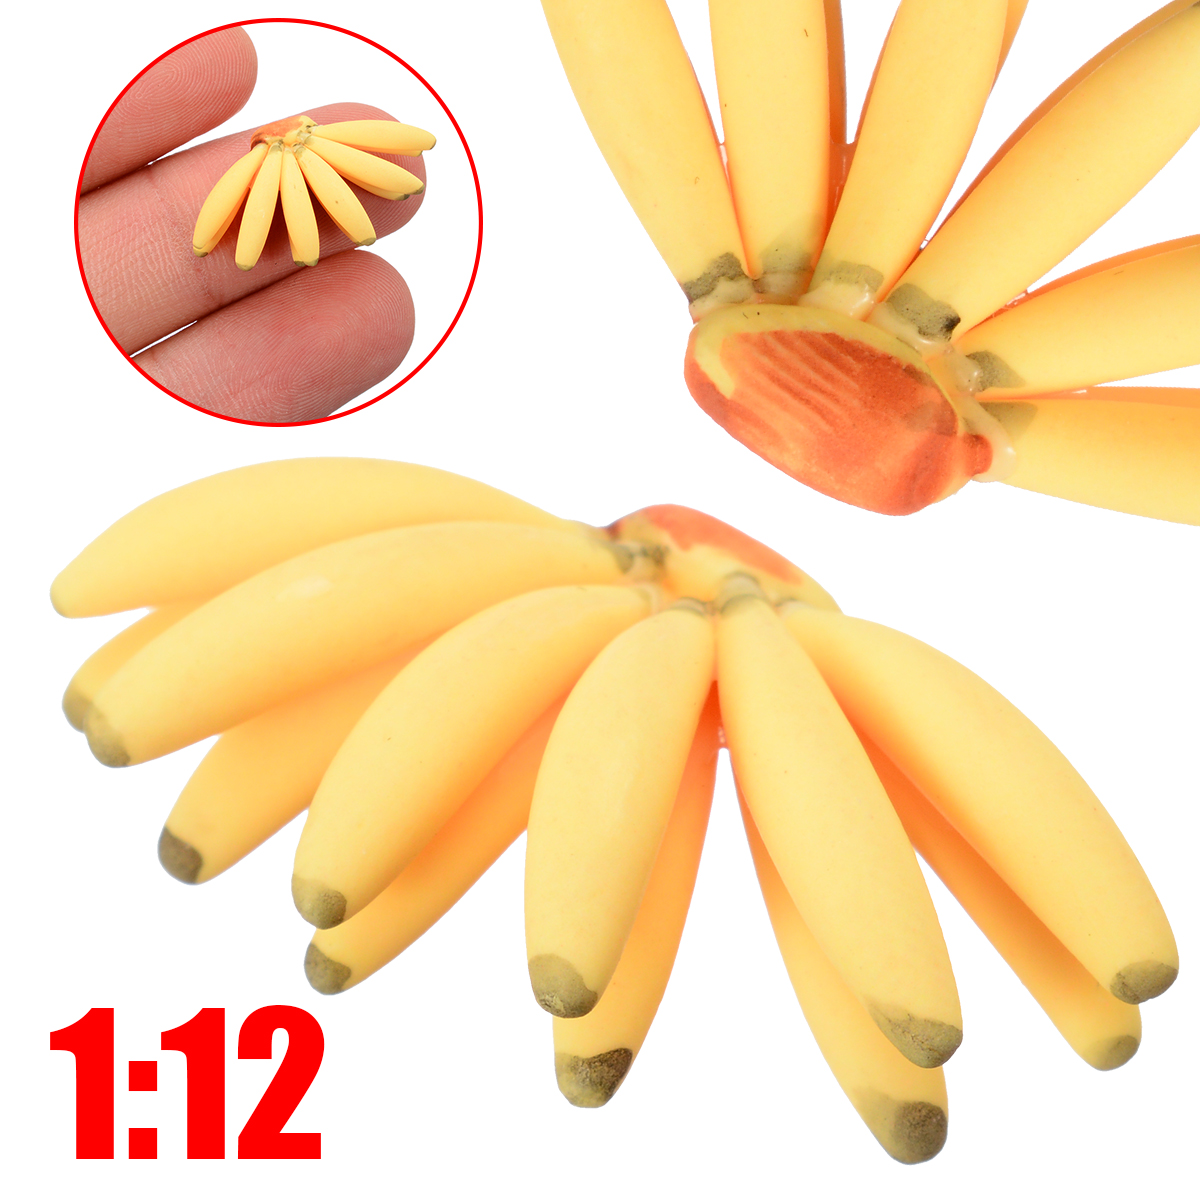 1:12 Scale One  Bunch Of Bananas  Dolls House Miniature Fruit Accessory